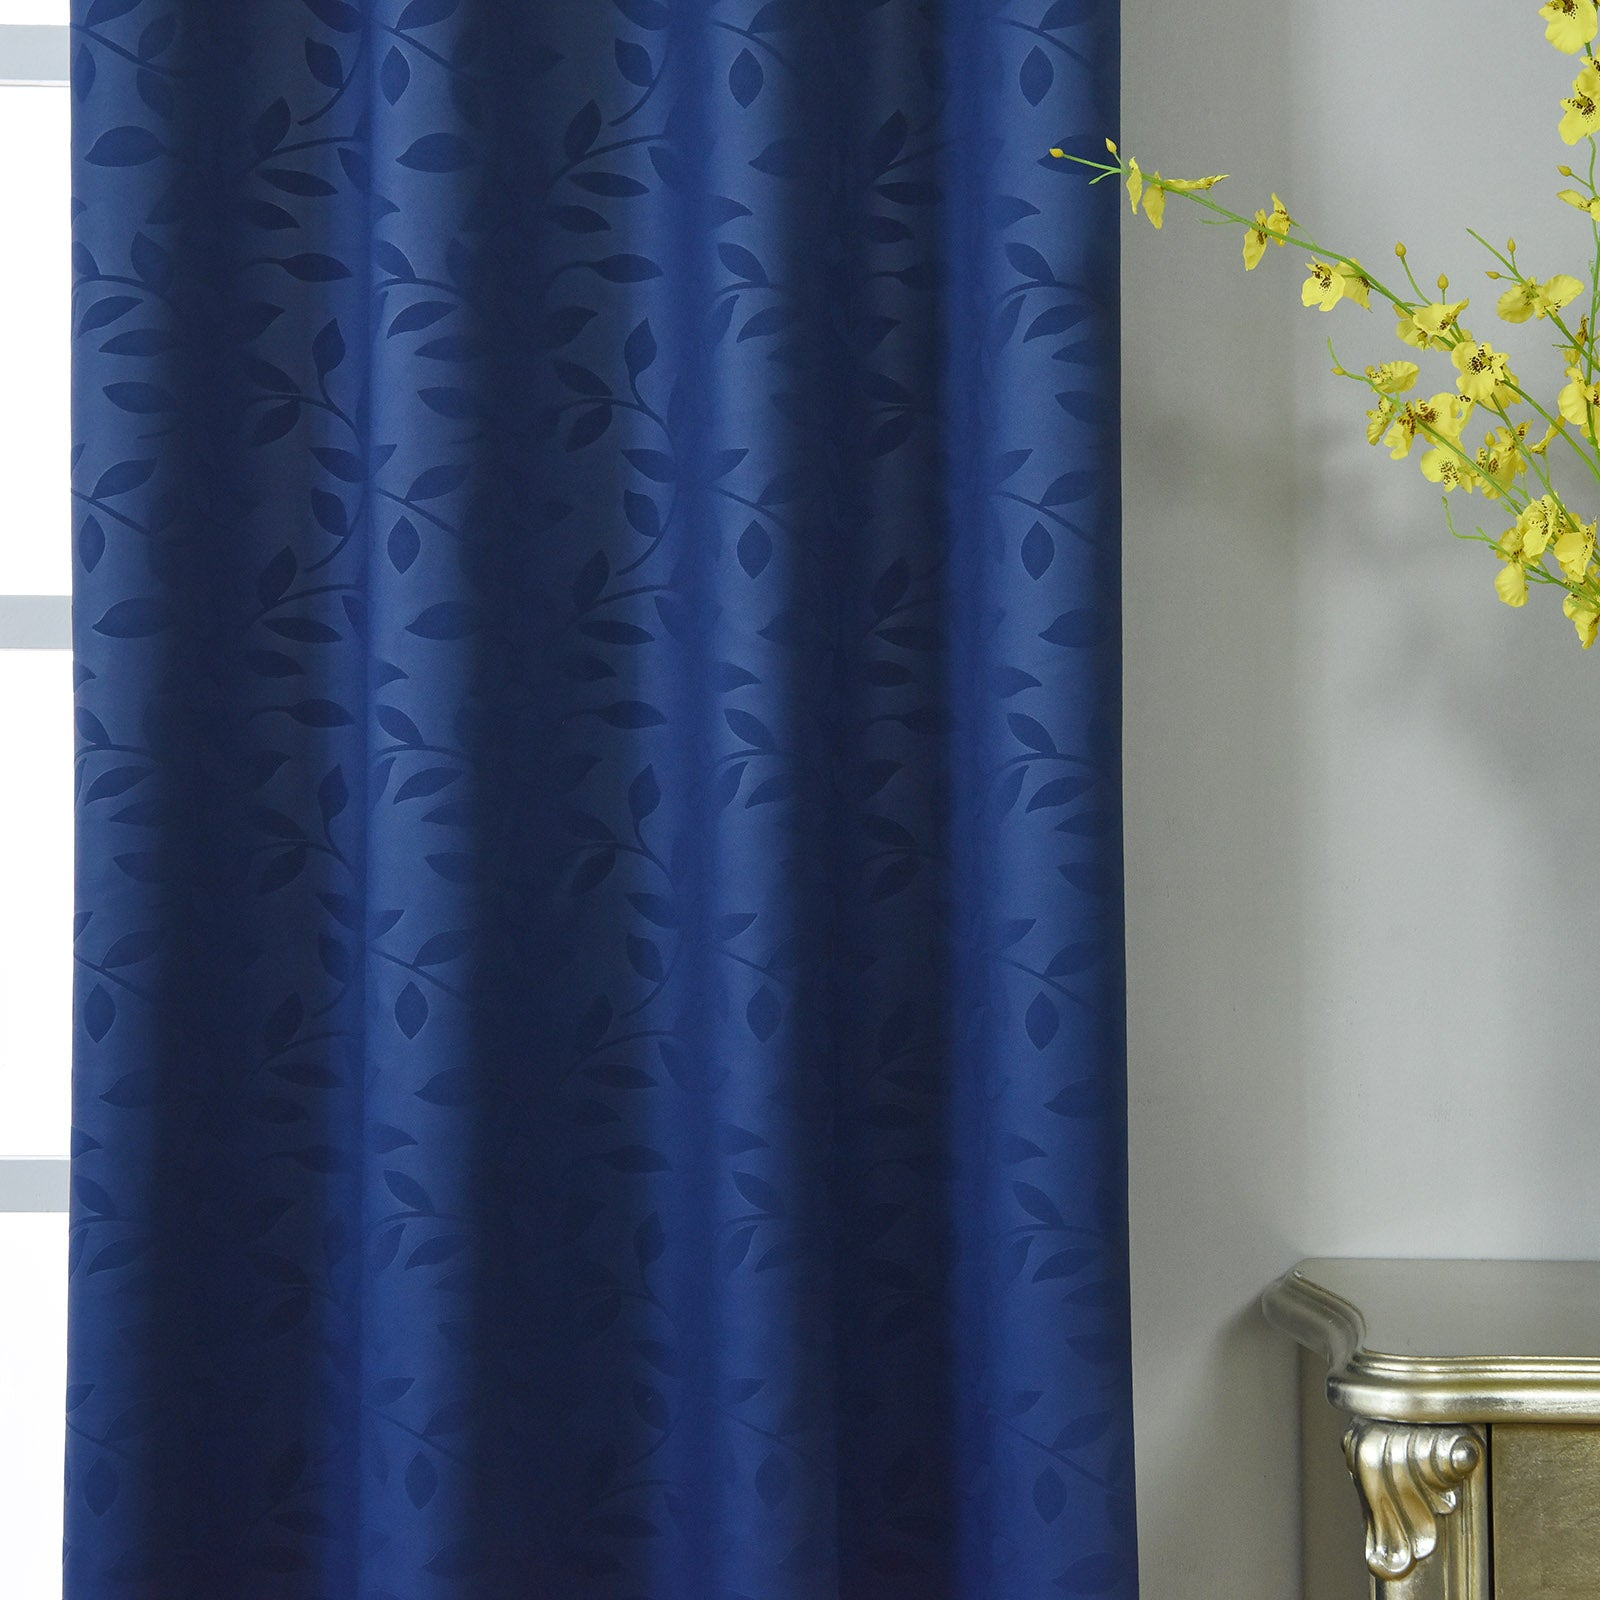 curtains and blackout blue hayneedle darkening royalblue panel options best list room decor color curtain fashion on home feature navy accents